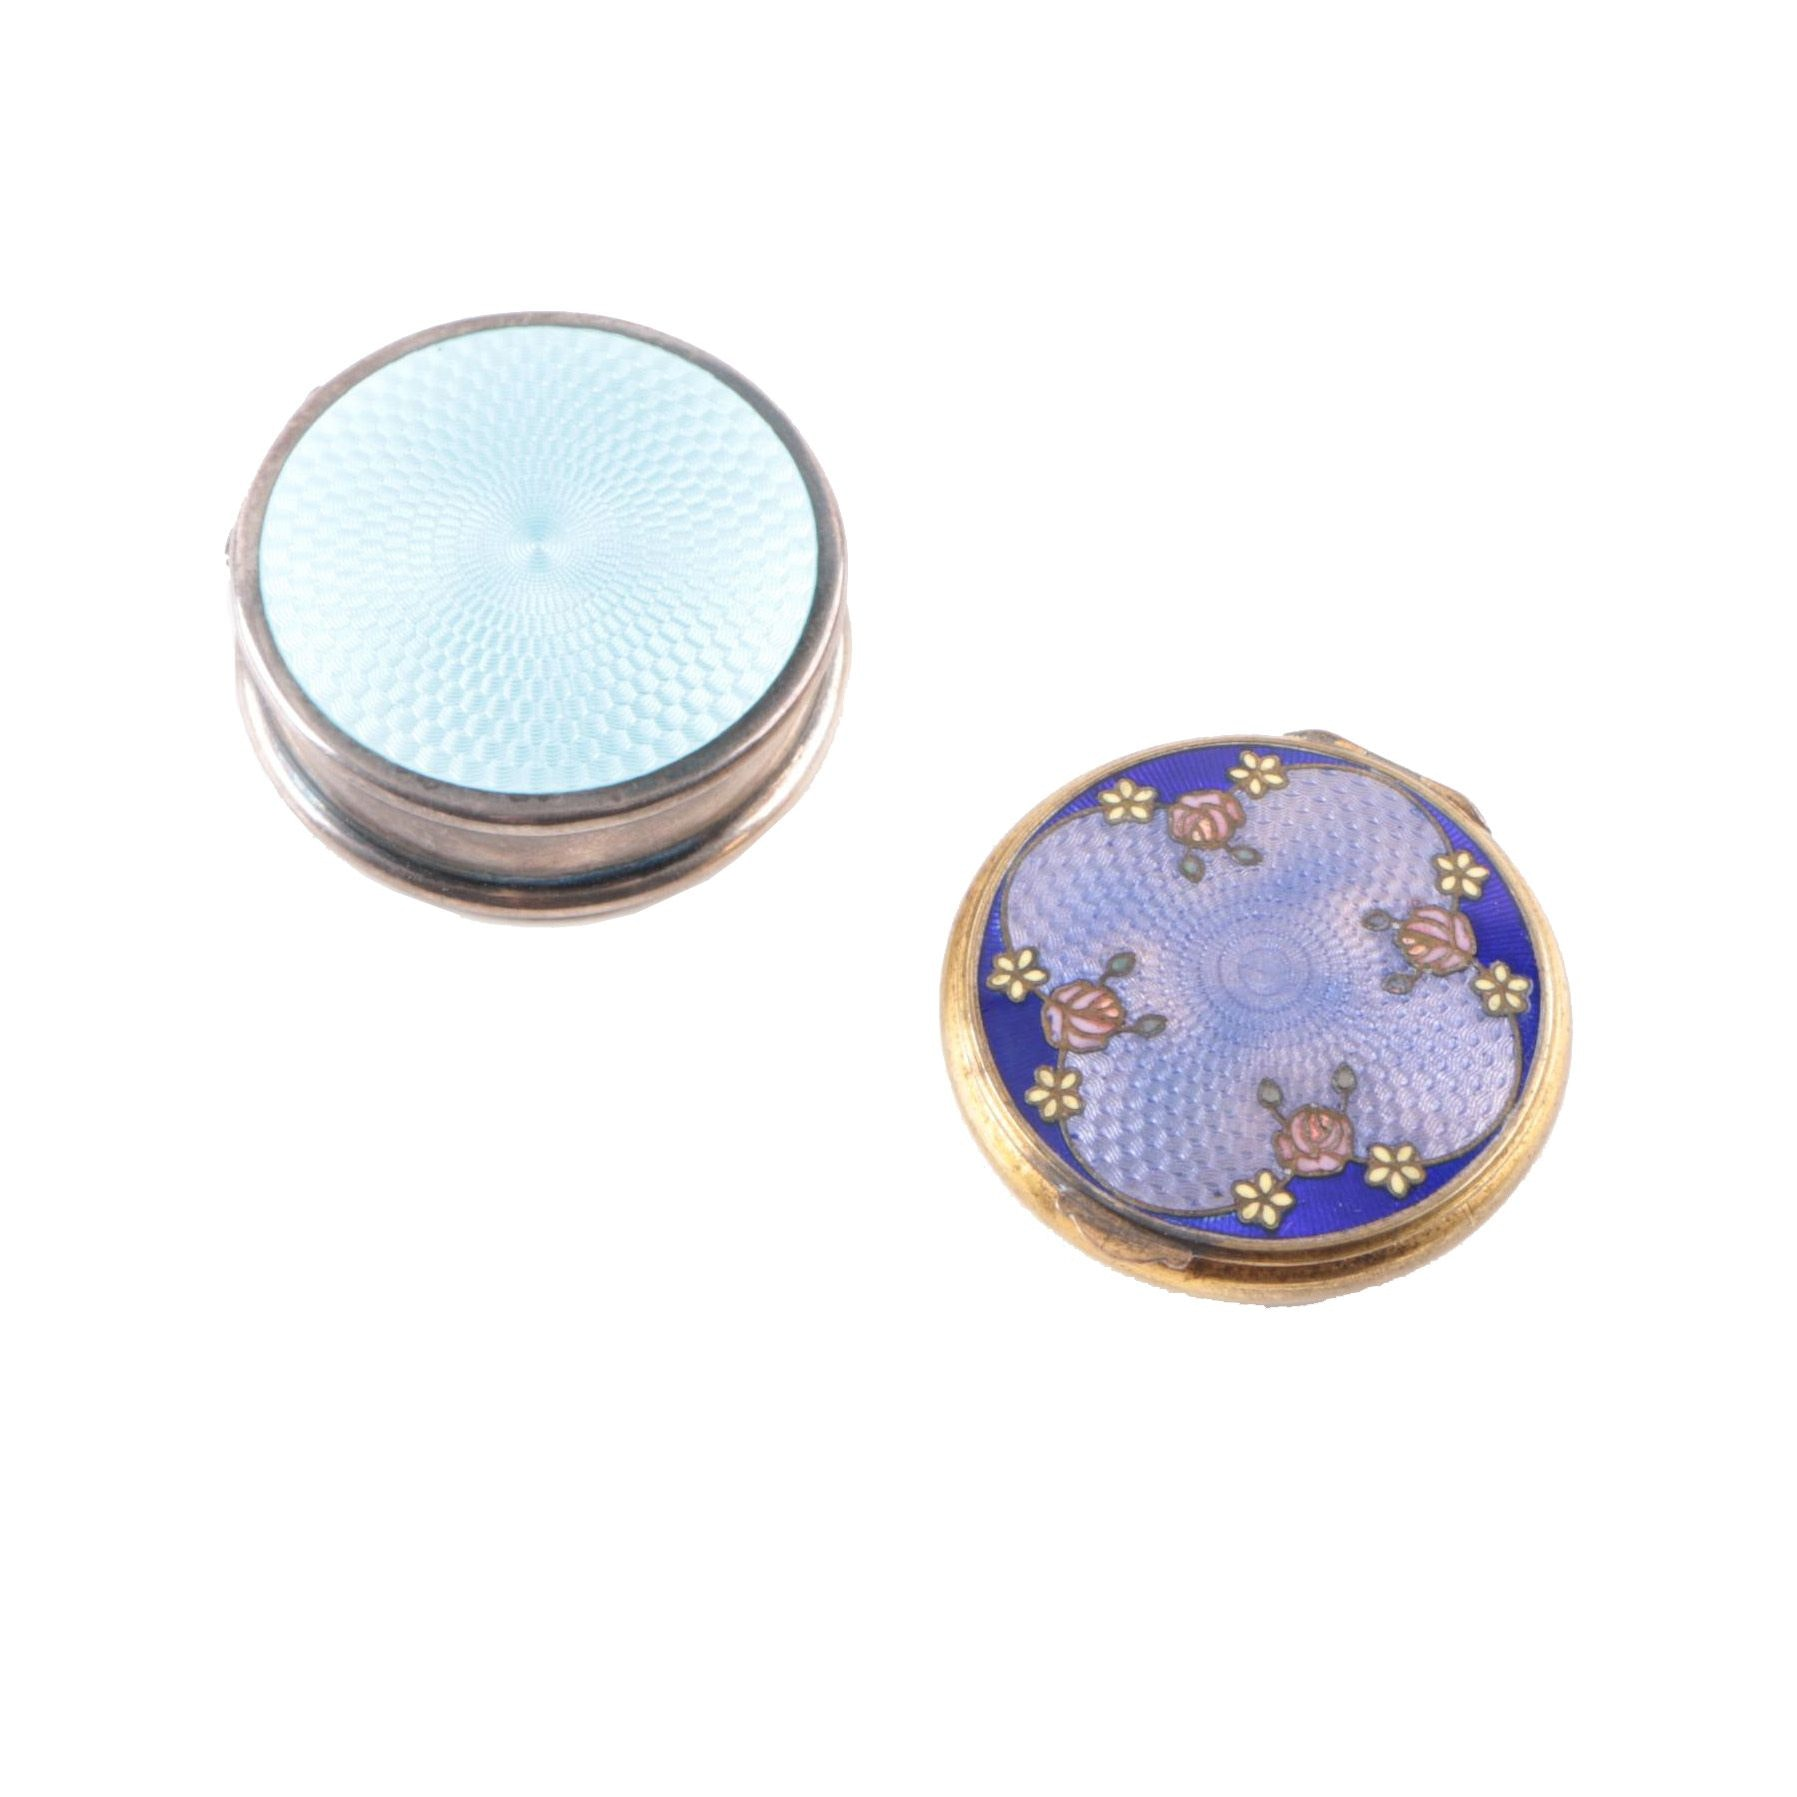 Guilloché Enameled Sterling Silver Compact Mirrors